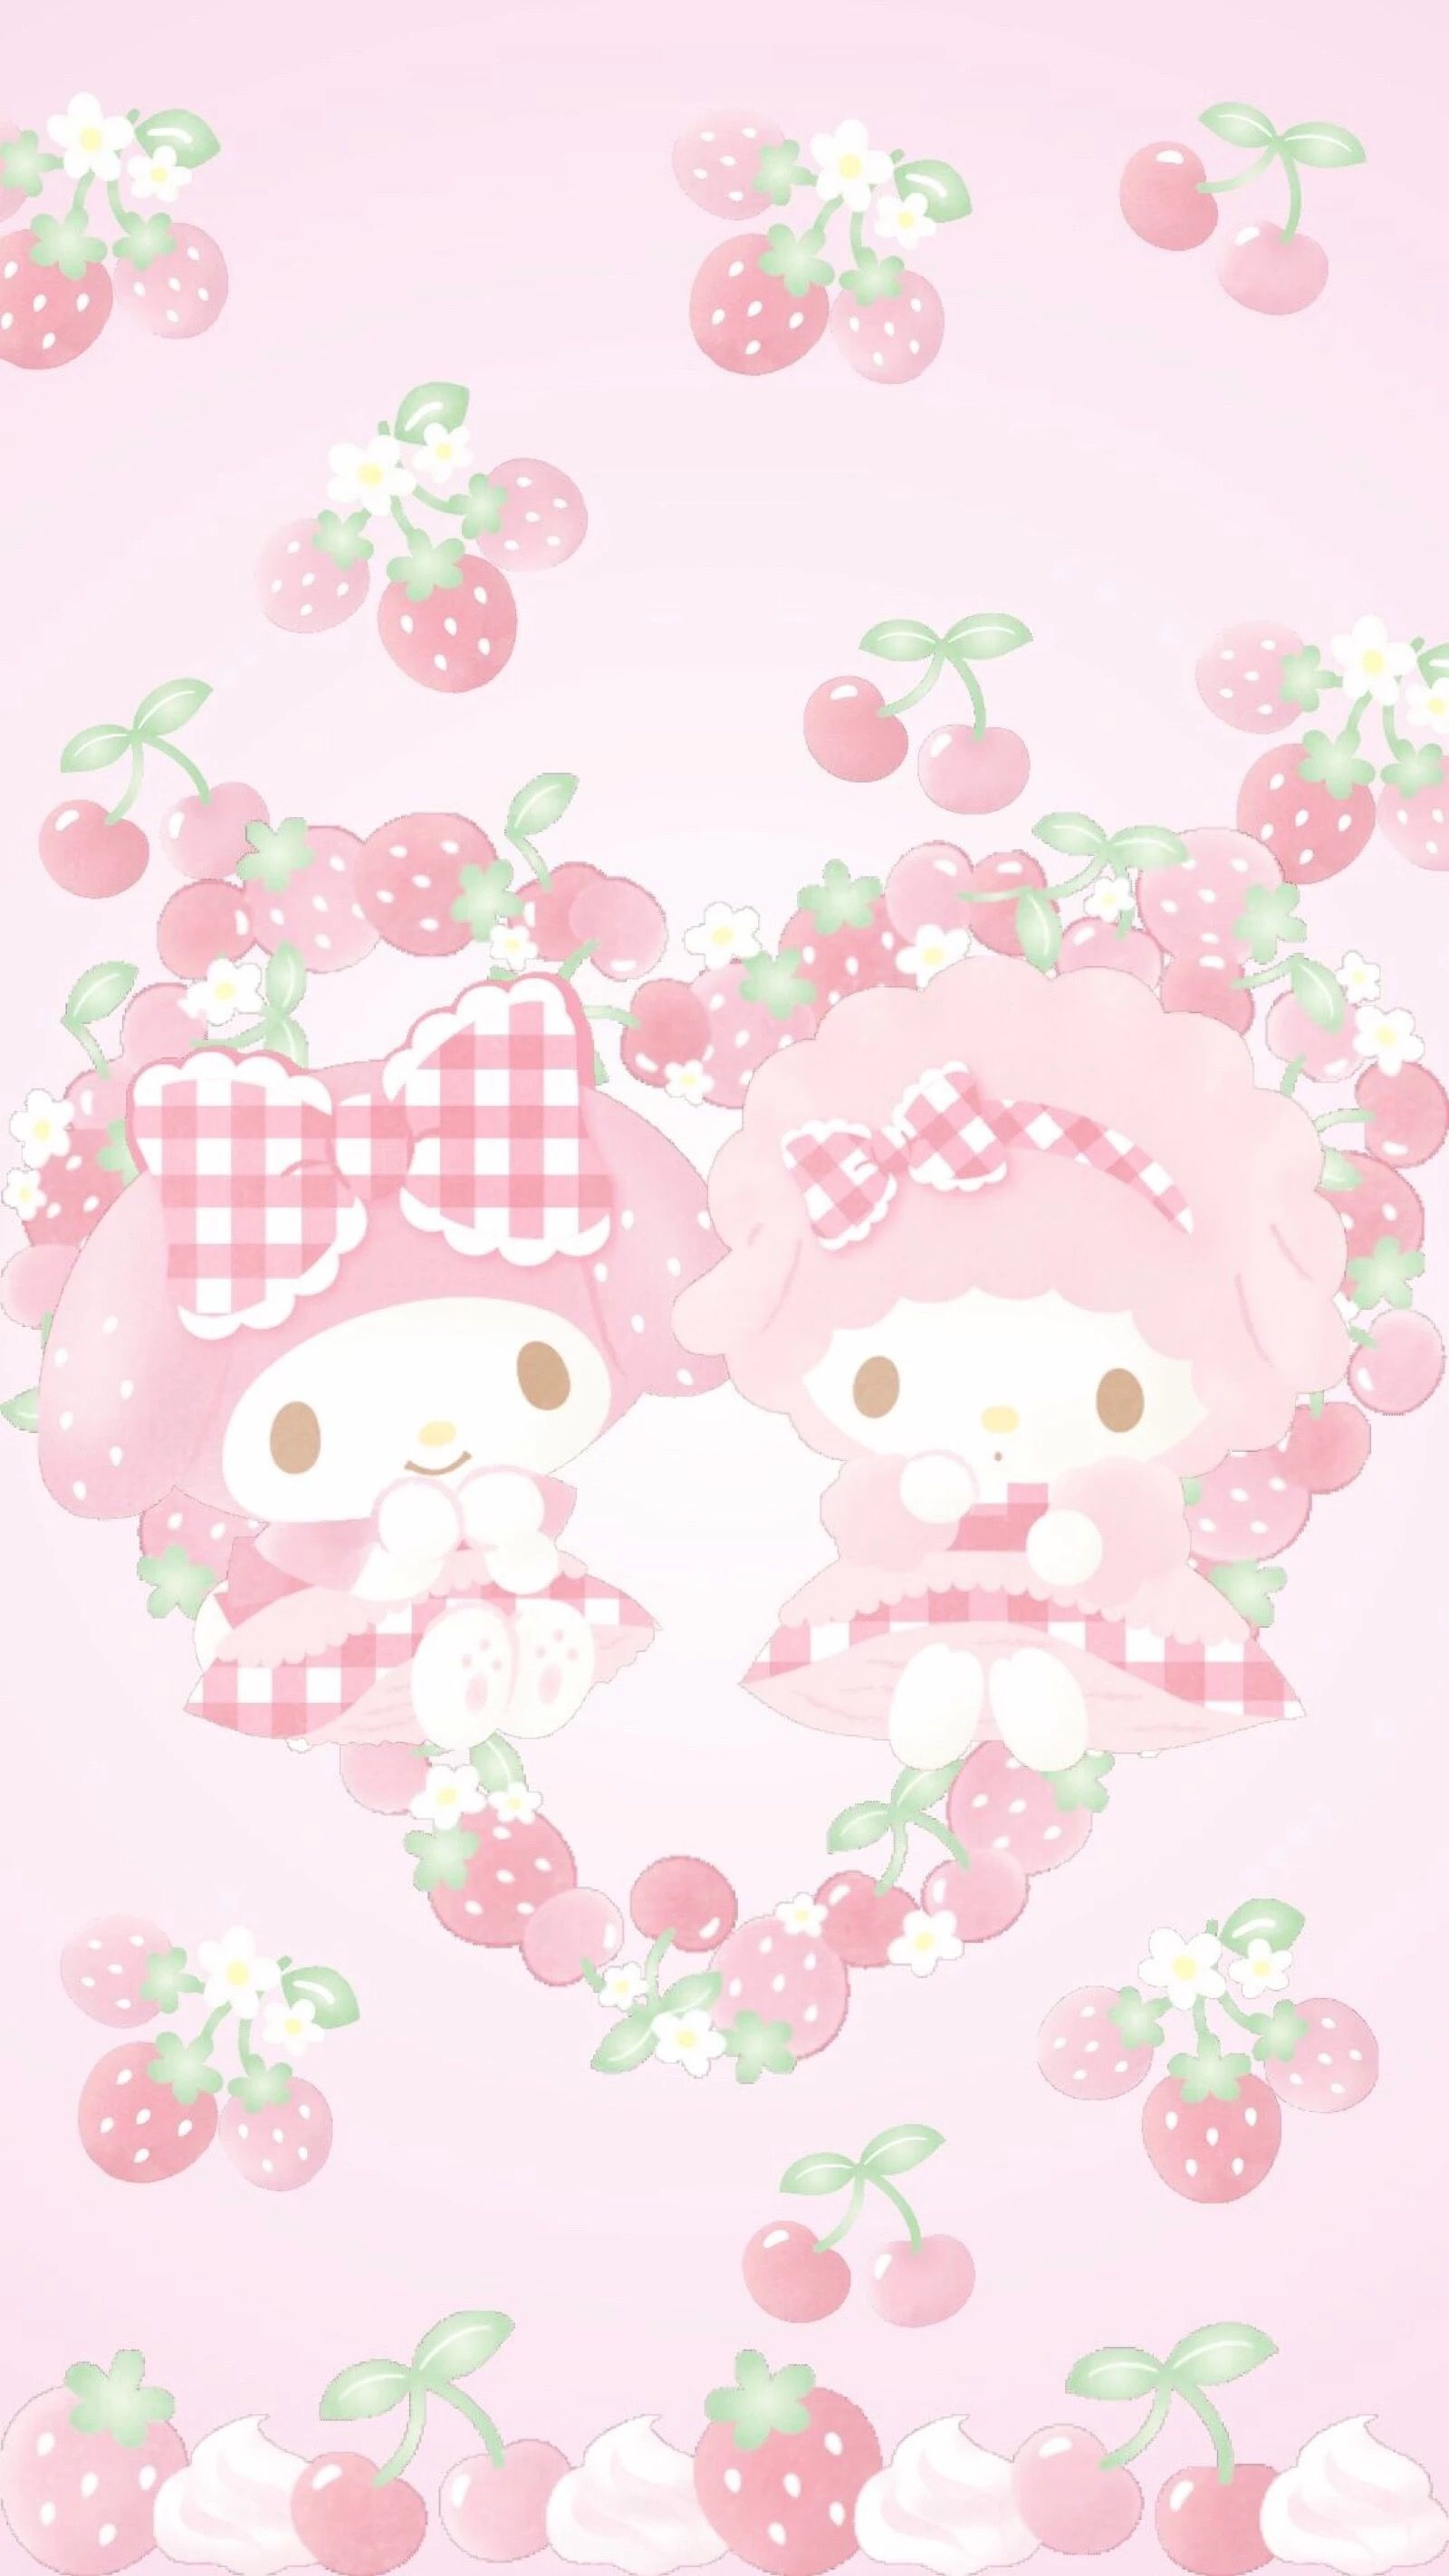 My Melody And Sweet Piano マイメロ 壁紙 壁紙 かわいい ディズニー 絵